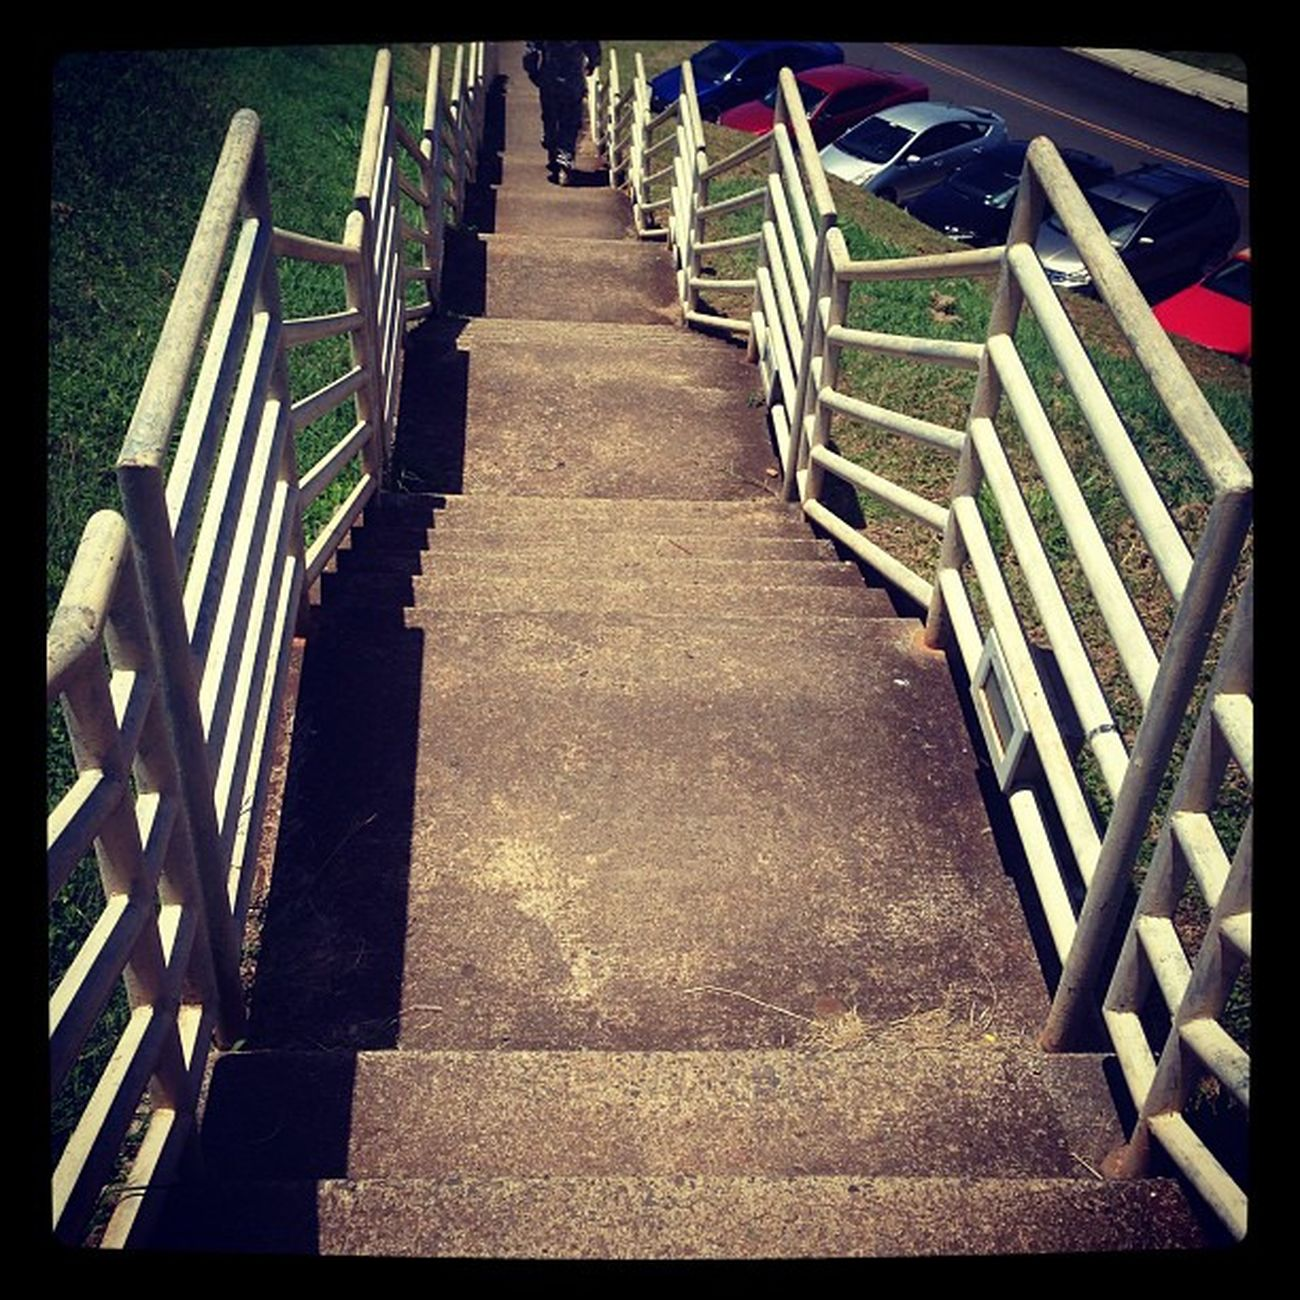 Stairs Staircase Hateparkingfar Parking workout exercise dayum